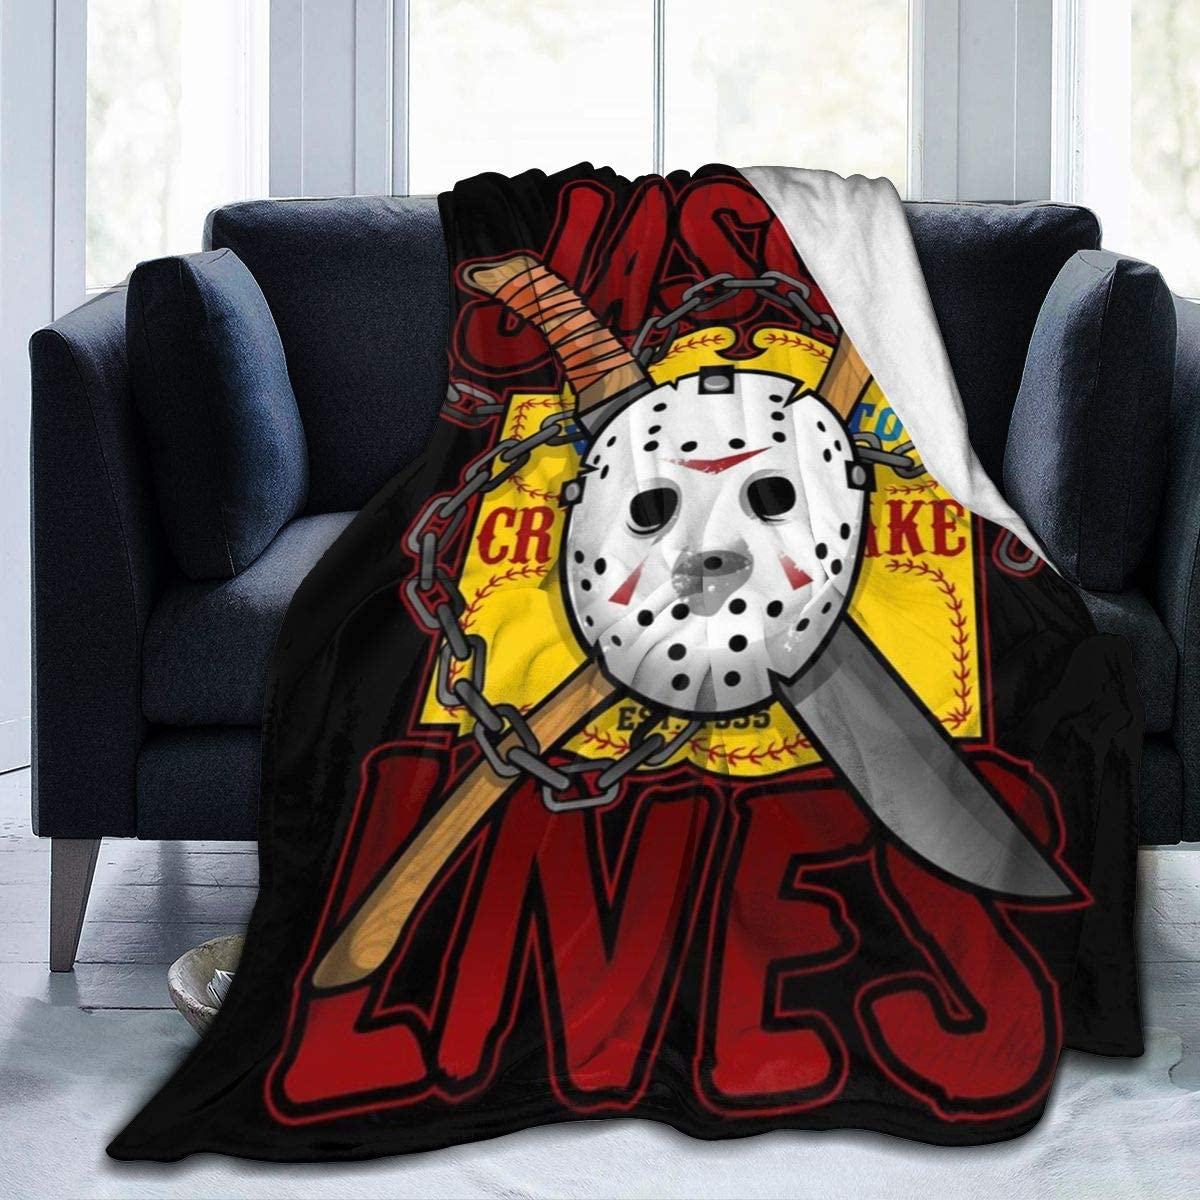 Jason-Voorhees Soft Plush Throw Blanket Super Fuzzy Warm Lightweight Thermal Fleece Blankets for Couch Bed Sofa All Season